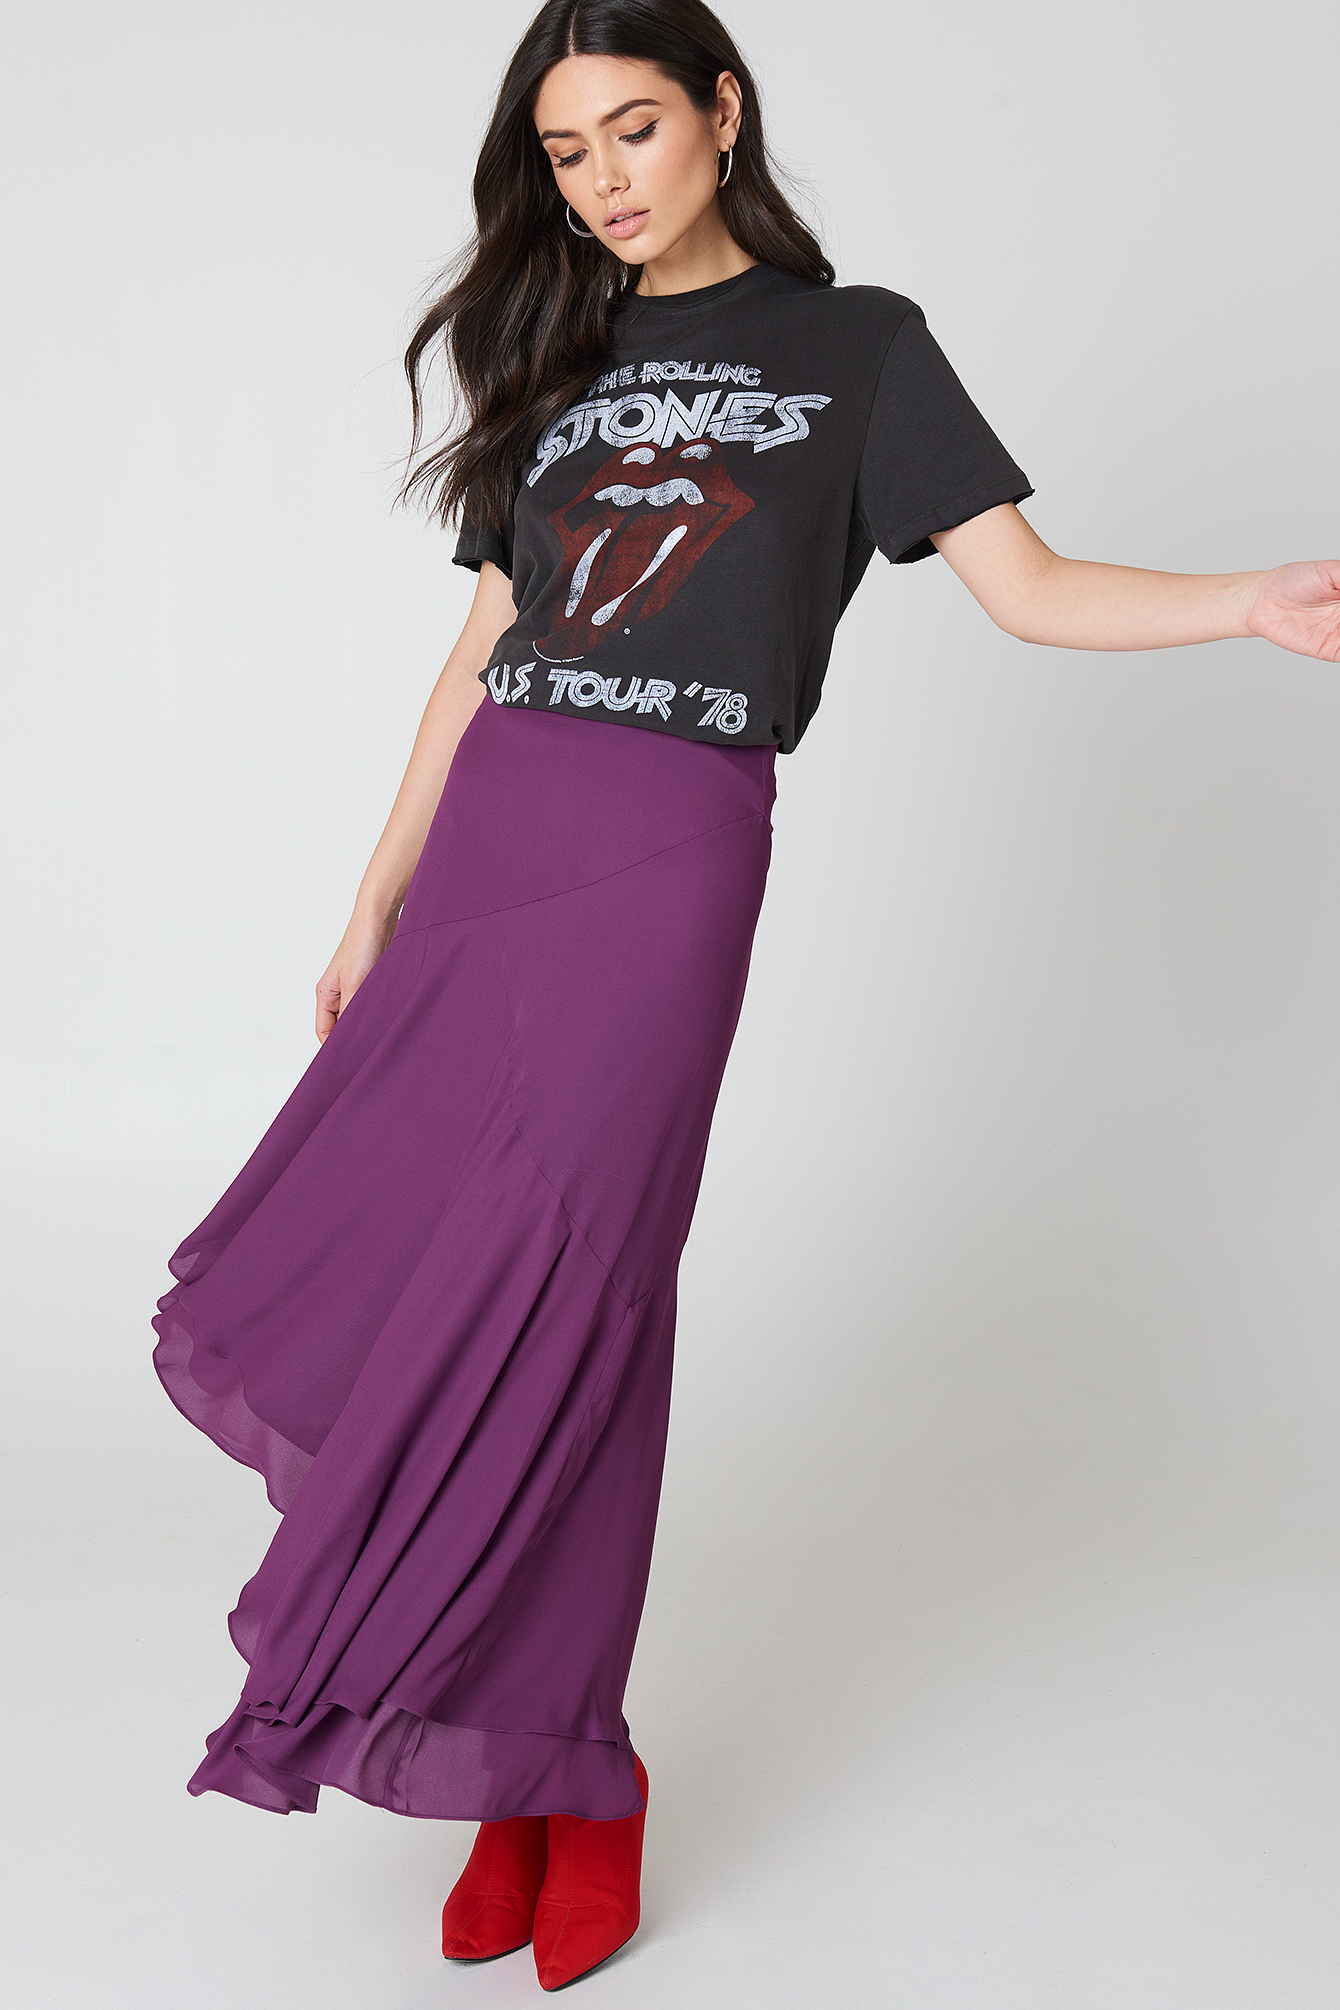 The Rolling Stones Tour 78 T-Shirt NA-KD.COM